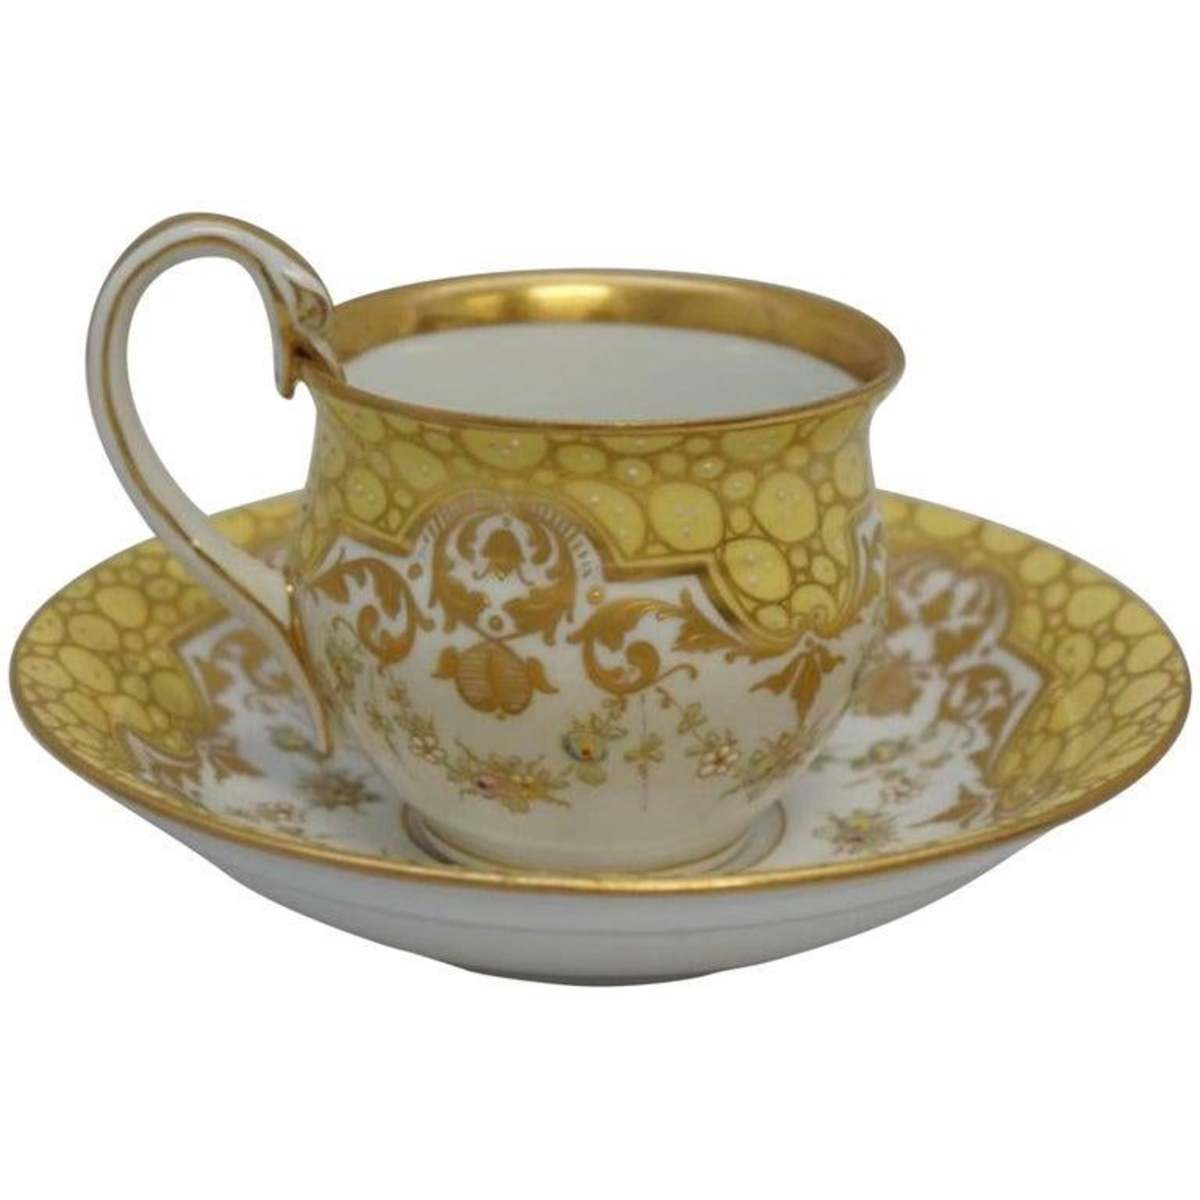 """Meissen swan-handle teacup and saucer set, heavy enameled floral swags and accentswith heavy gilt, cup is 3"""" d x 2-1/2"""" h; saucer is 5-1/2"""" d x 1-1/4"""" h, $700."""